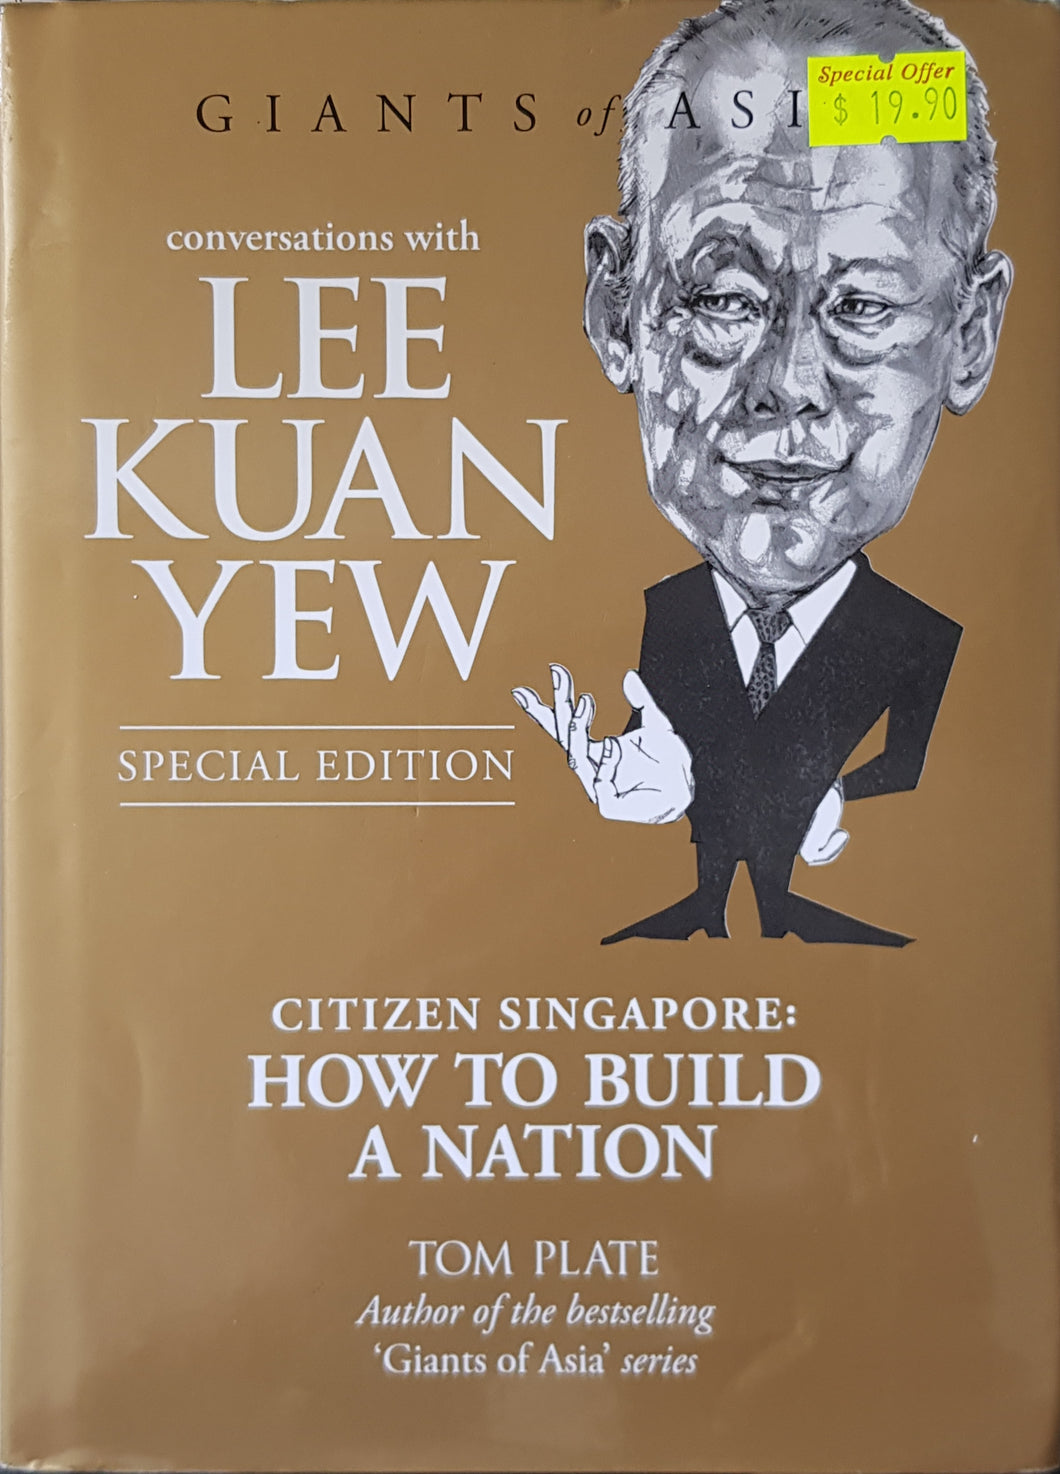 Conversations with Lee Kuan Yew : Citizen Singapore: How to Build a Nation - Tom Plate